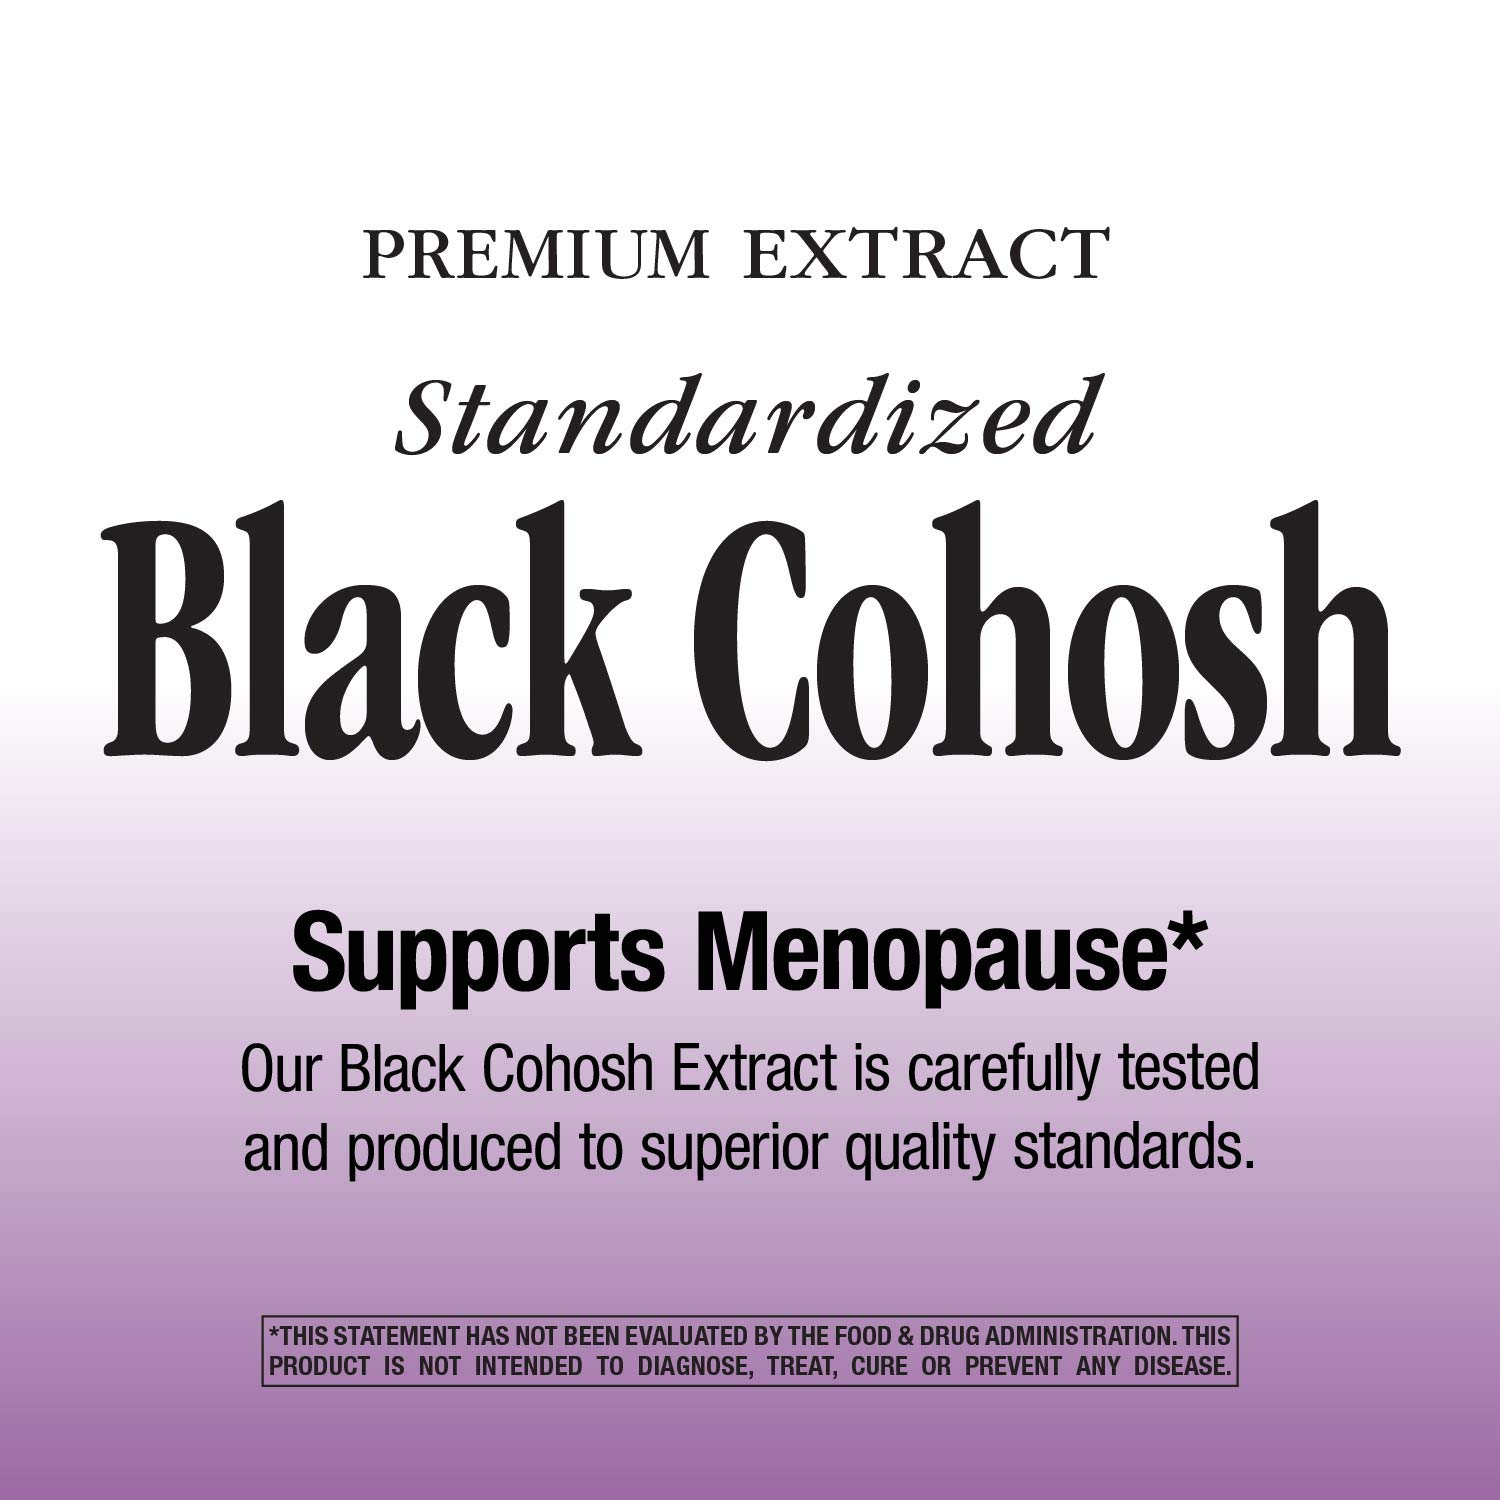 Nature's Way Standardized Black Cohosh; 2.5% Triterpene Glycosides per serving; Non-GMO Project Verified; Gluten Free; Vegetarian; 120 Vegetarian Capsules by Nature's Way (Image #2)